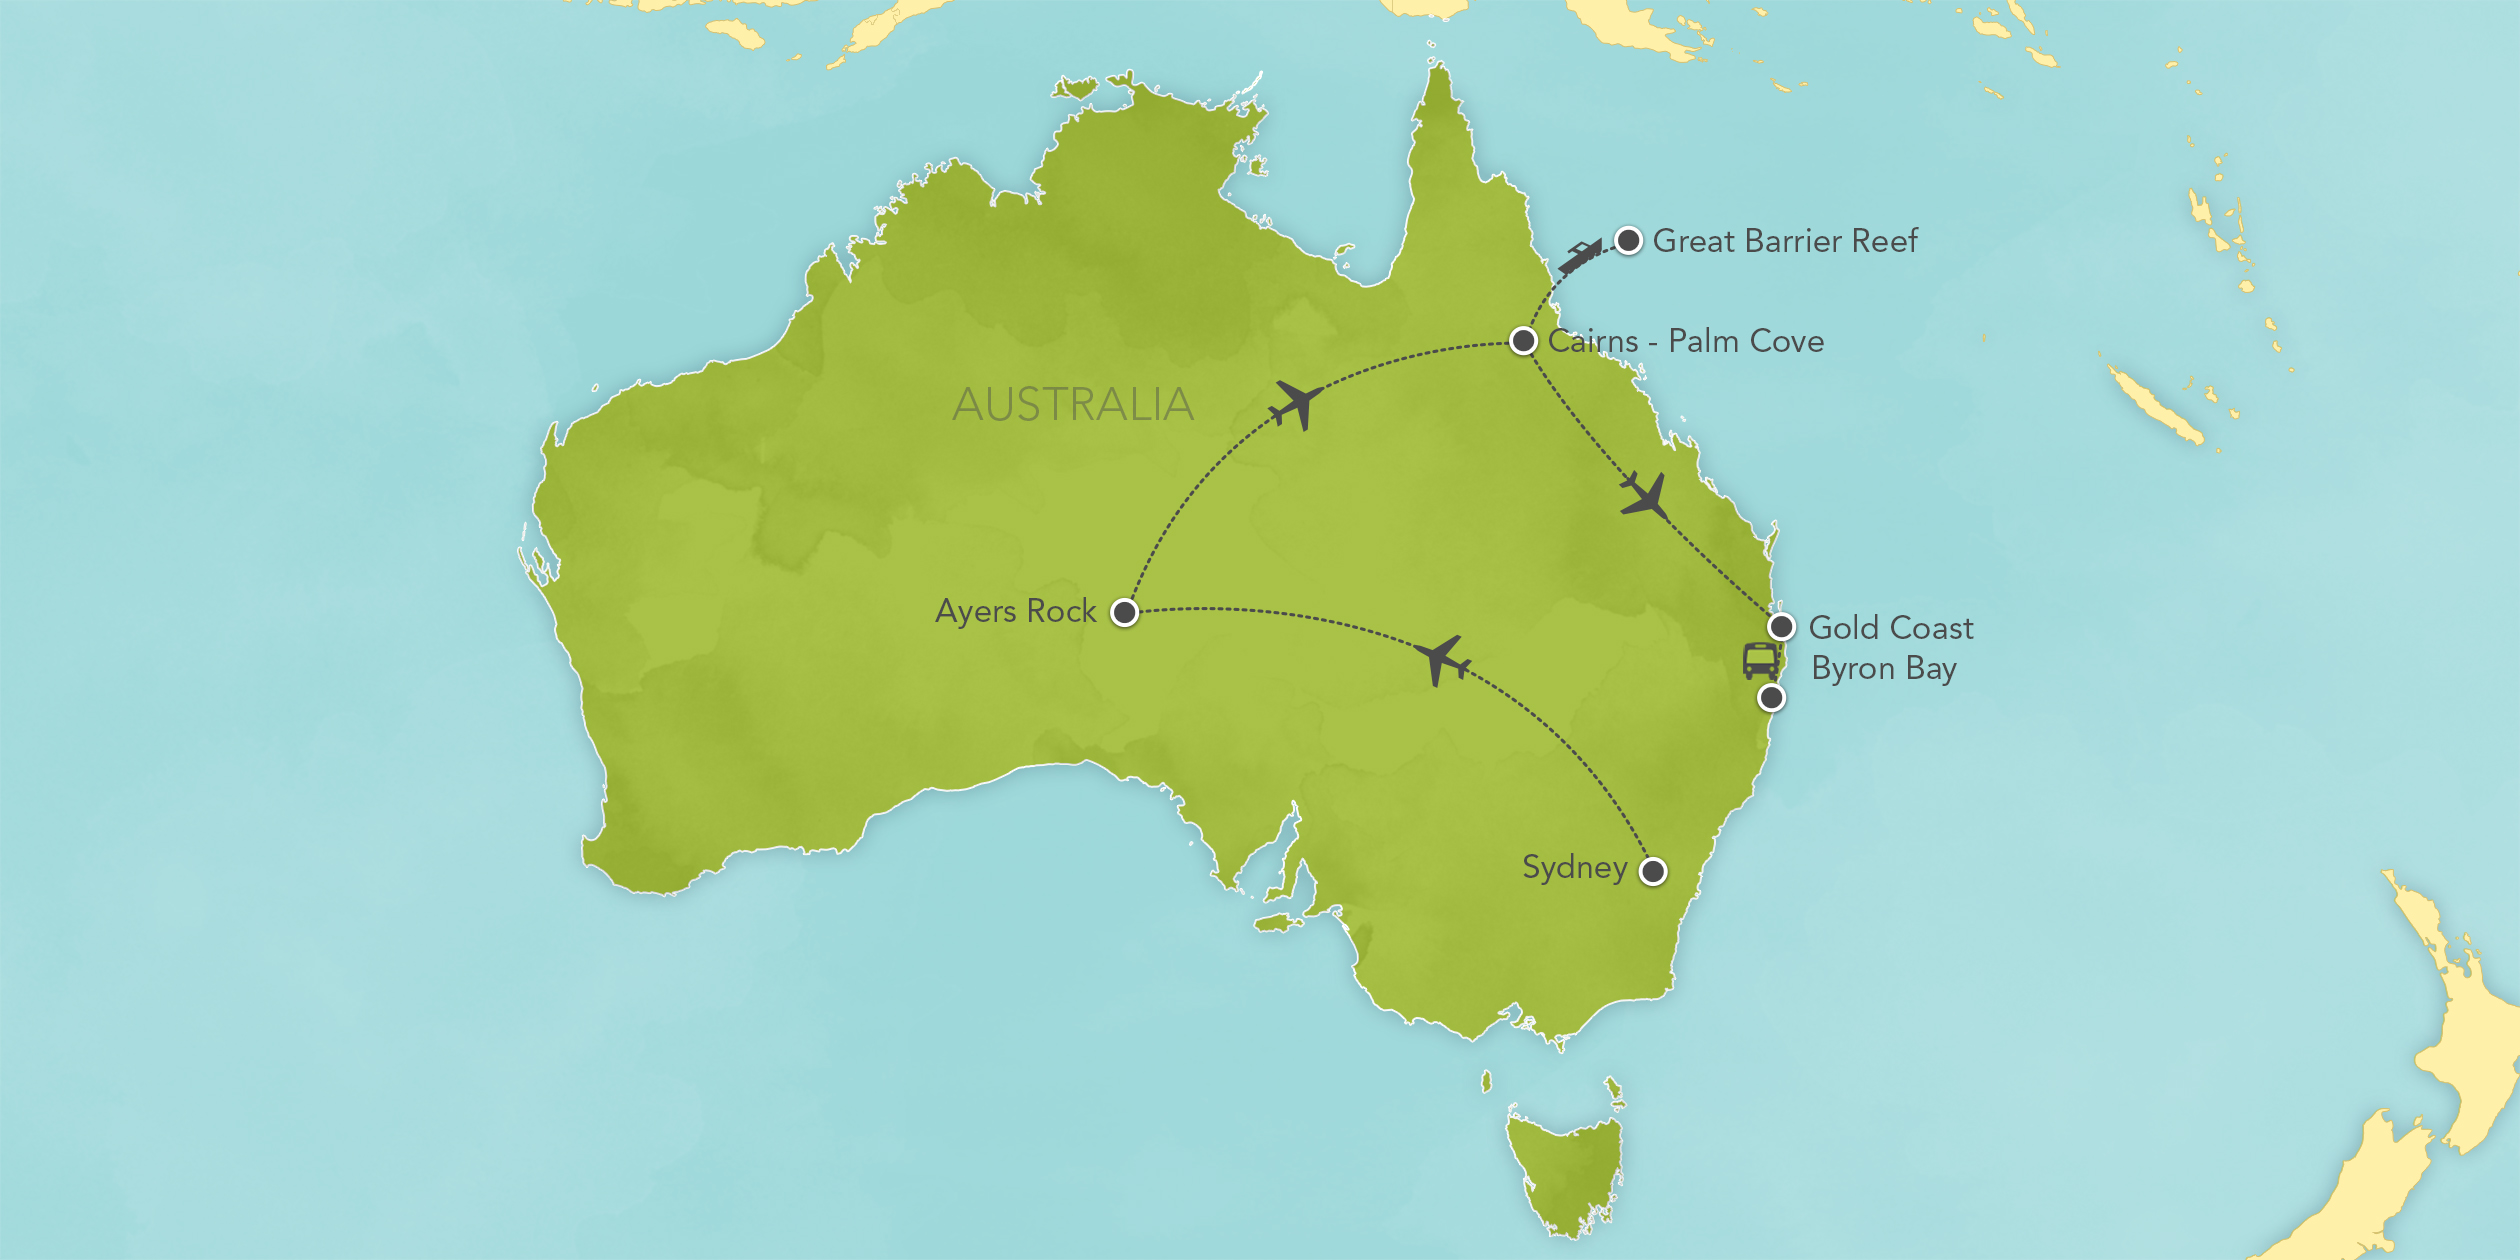 Itinerary map of Australia: Sydney, Ayers Rock, Tasmania & Great Barrier Reef 2017